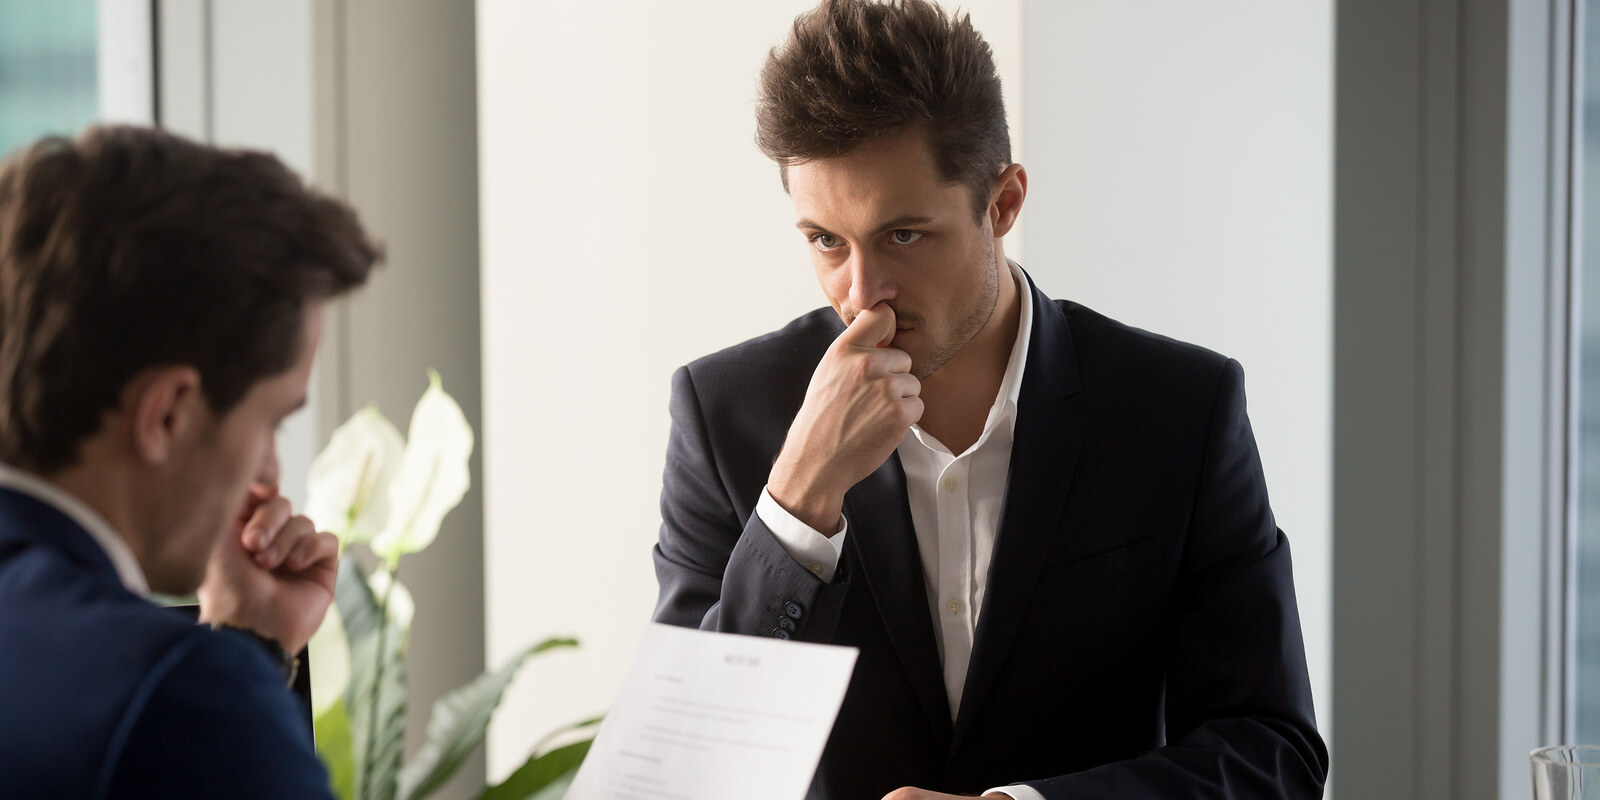 5 steps to take after a bad job interview